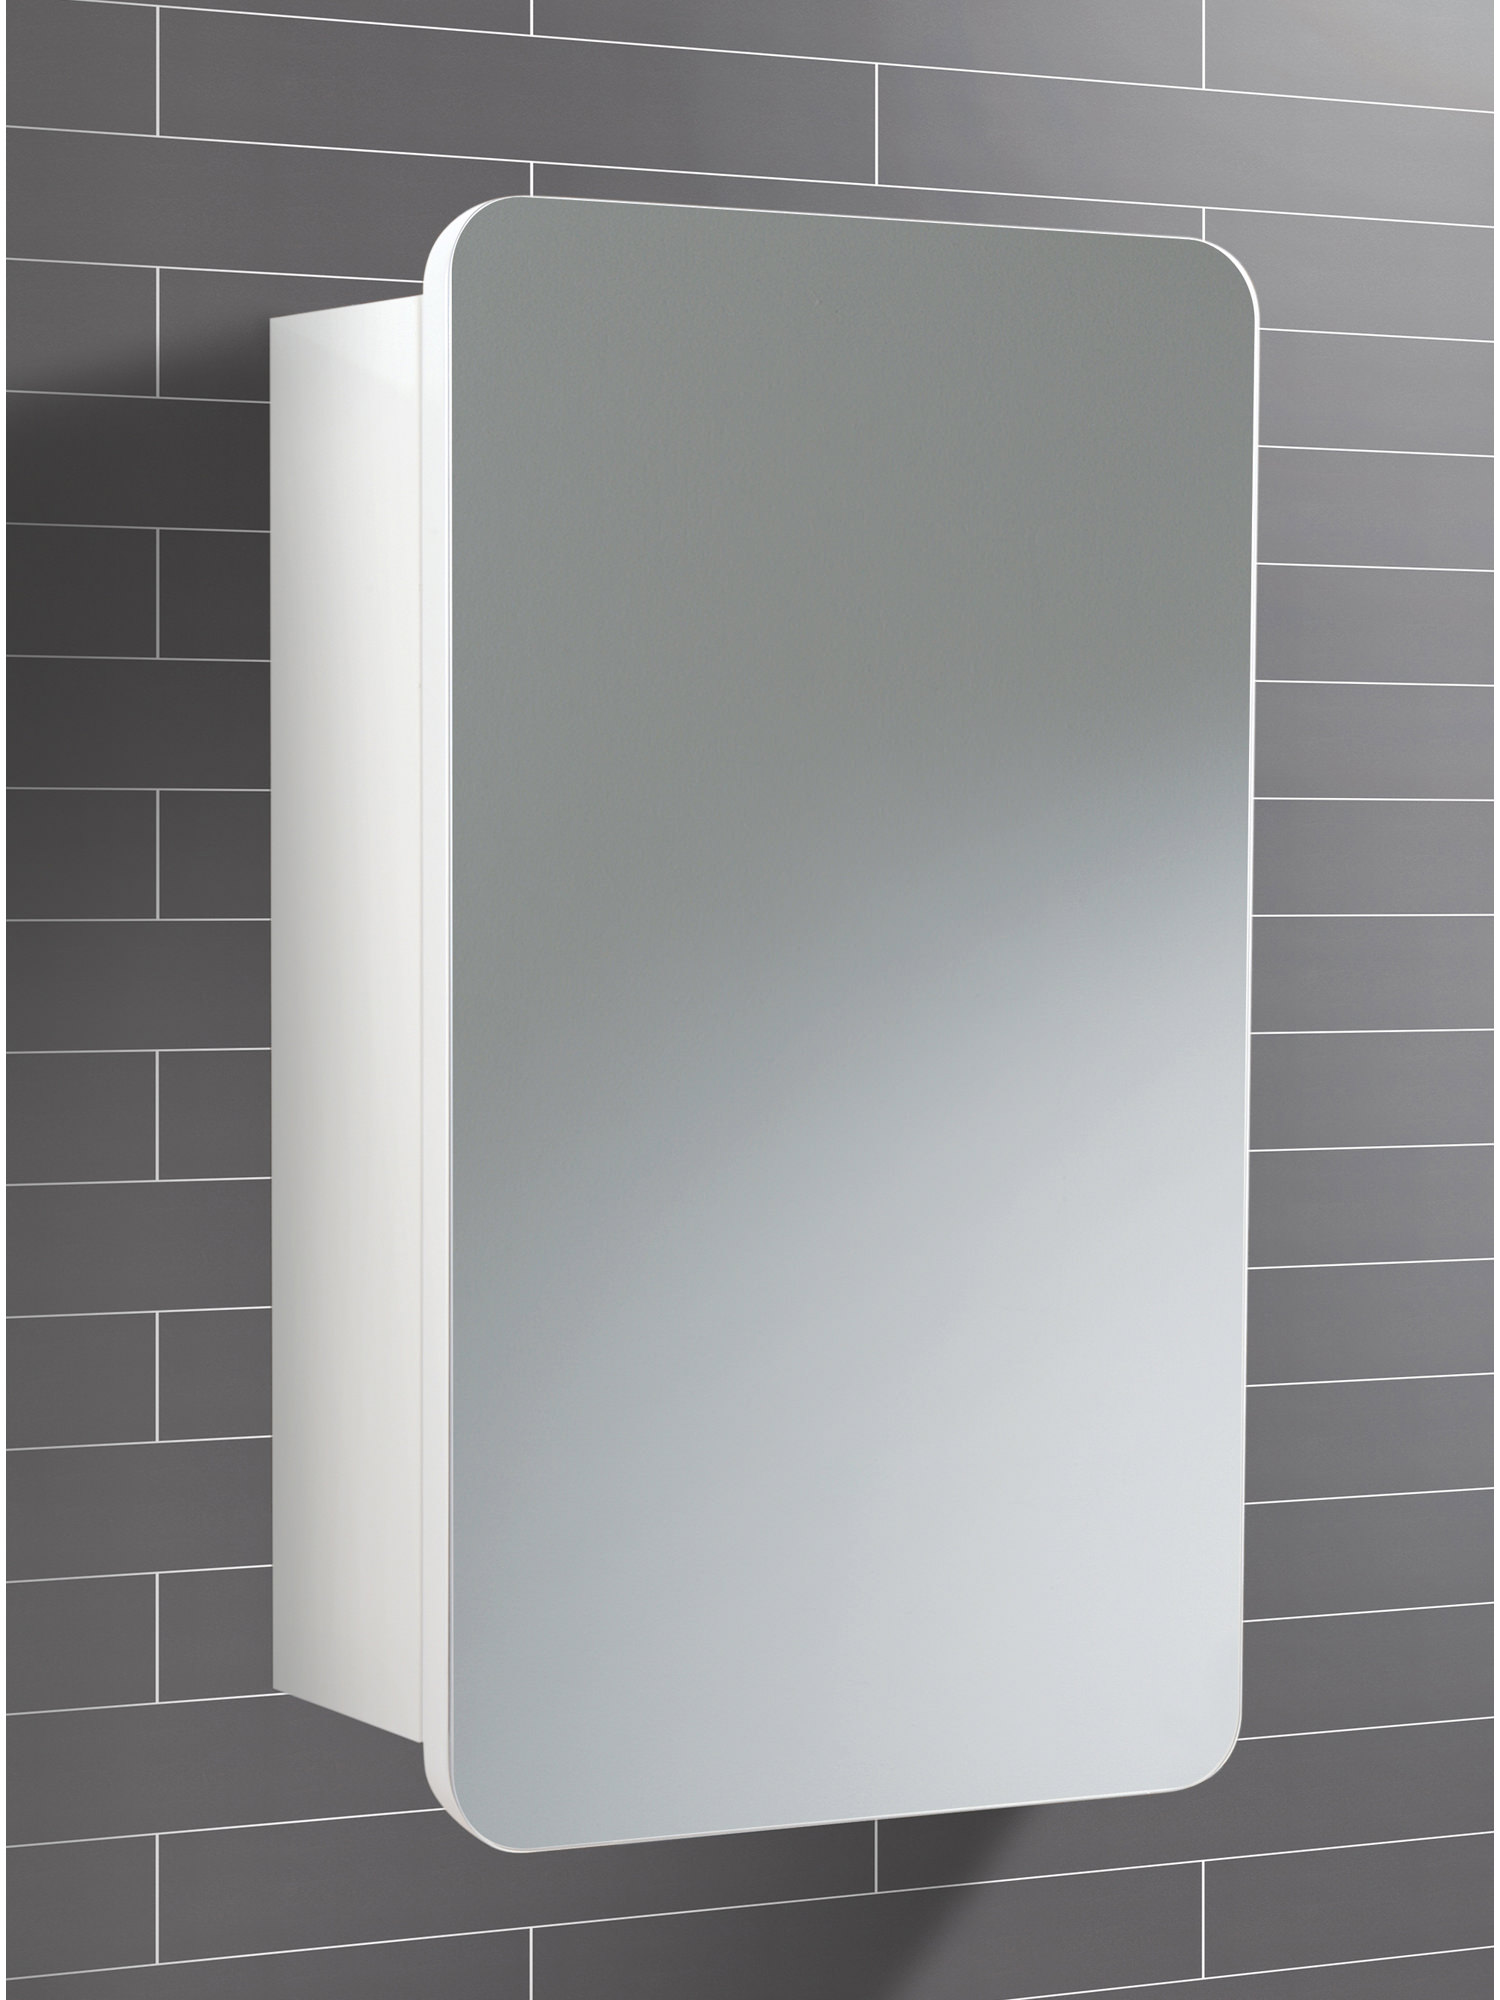 Mirrored Bathroom Cupboard Hib Montana Single Door Bathroom Mirrored Cabinet 350 X